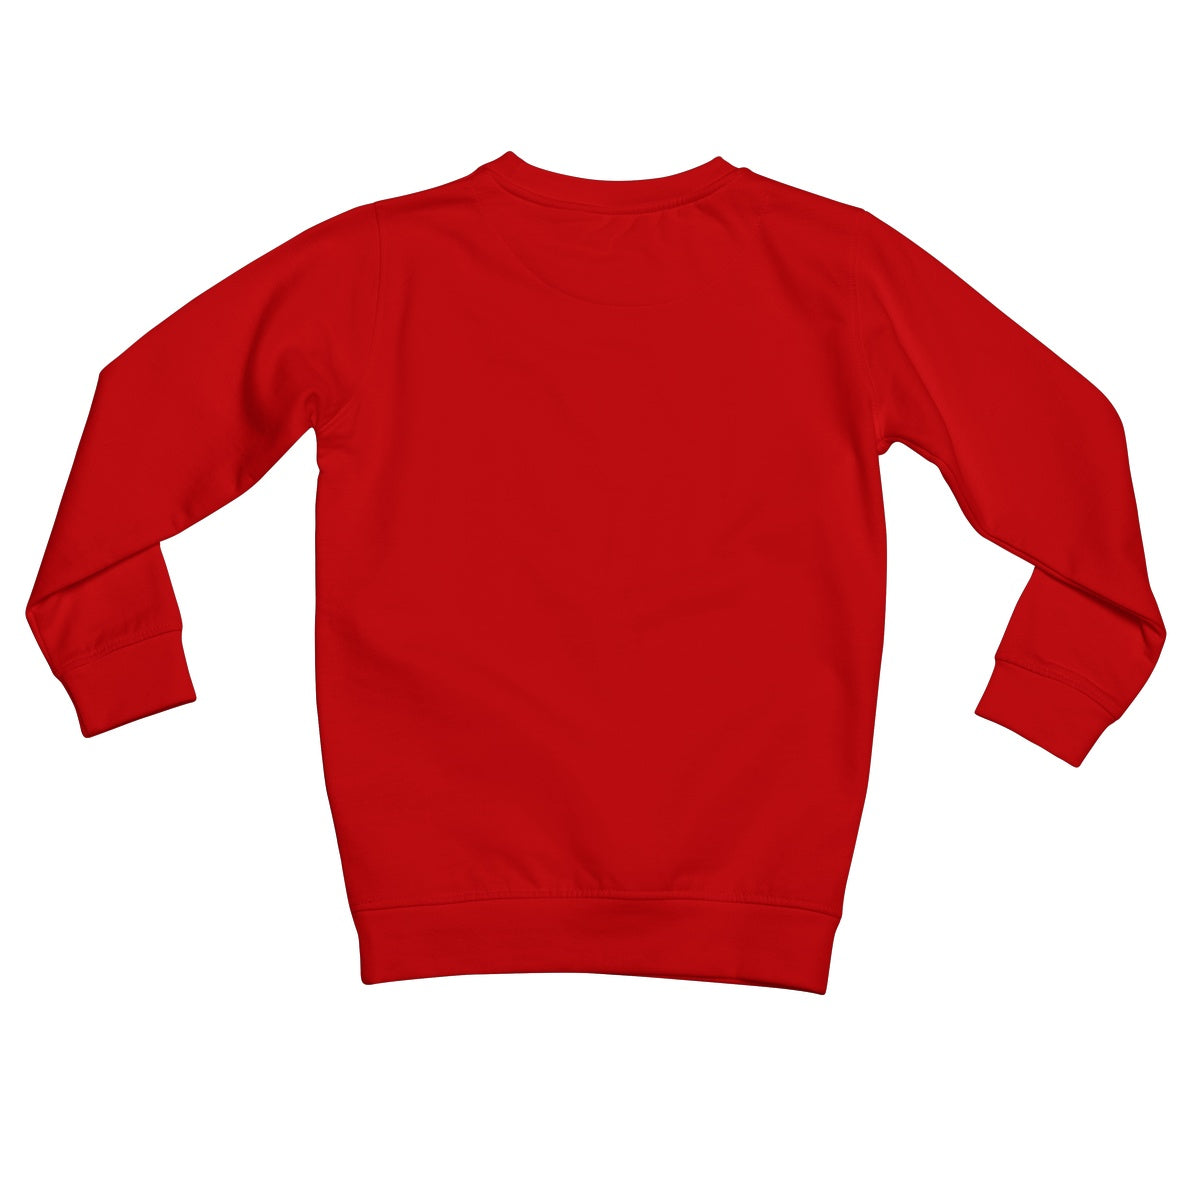 Splat! Kids Retail Sweatshirt